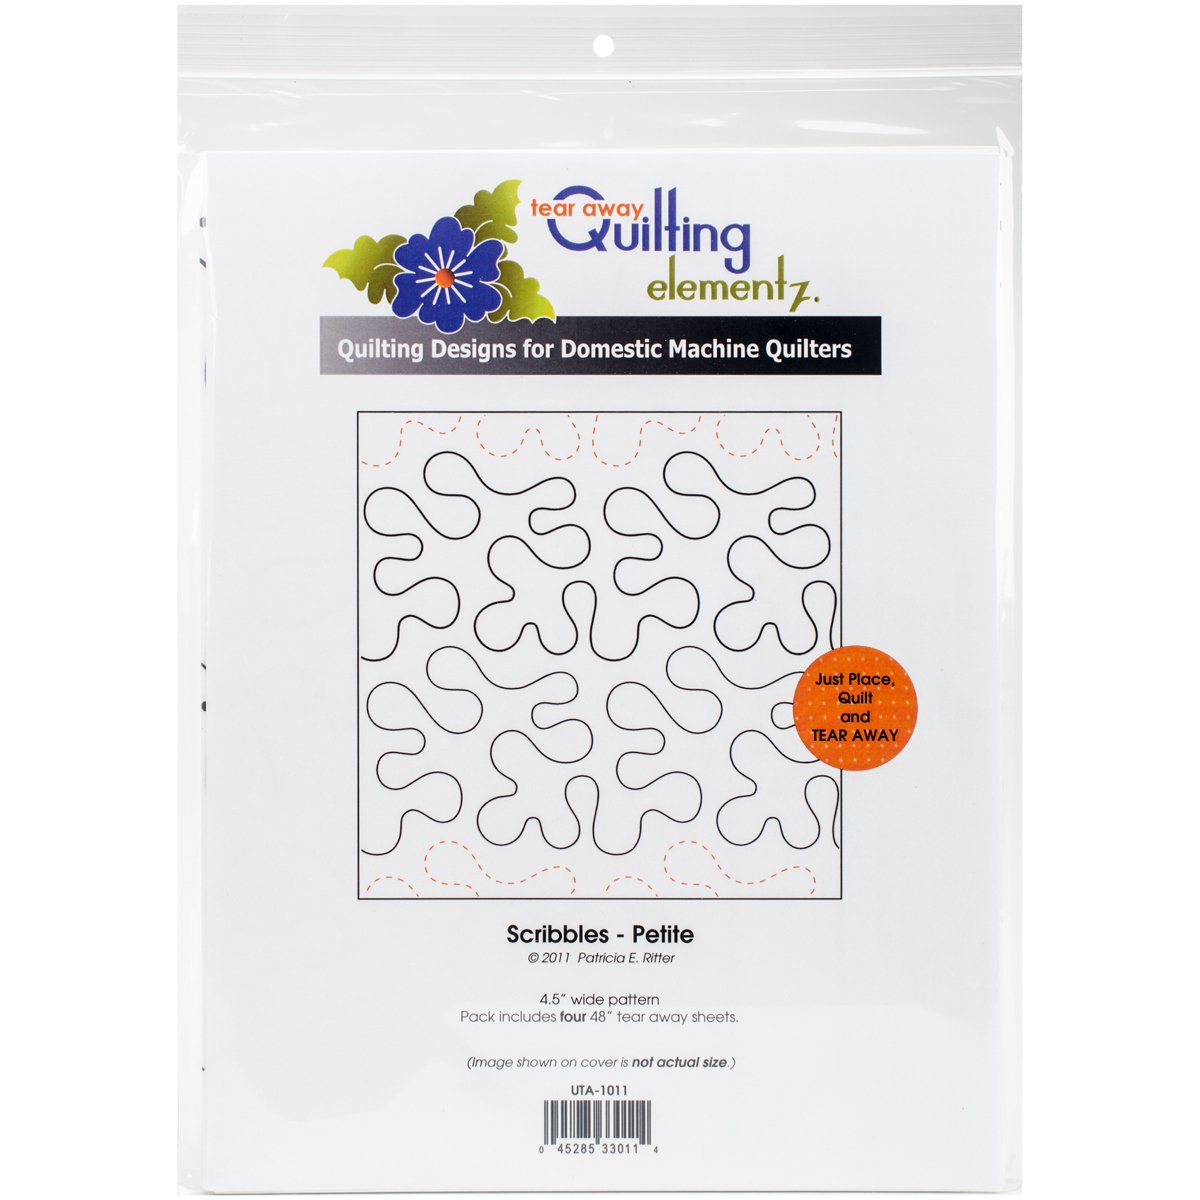 Quilting Creations Scribbles-Petite, 4-1/2 Inch Rows UTA-1011 Urban Elementz Tear Away, 4 Pack by Quilting Creations